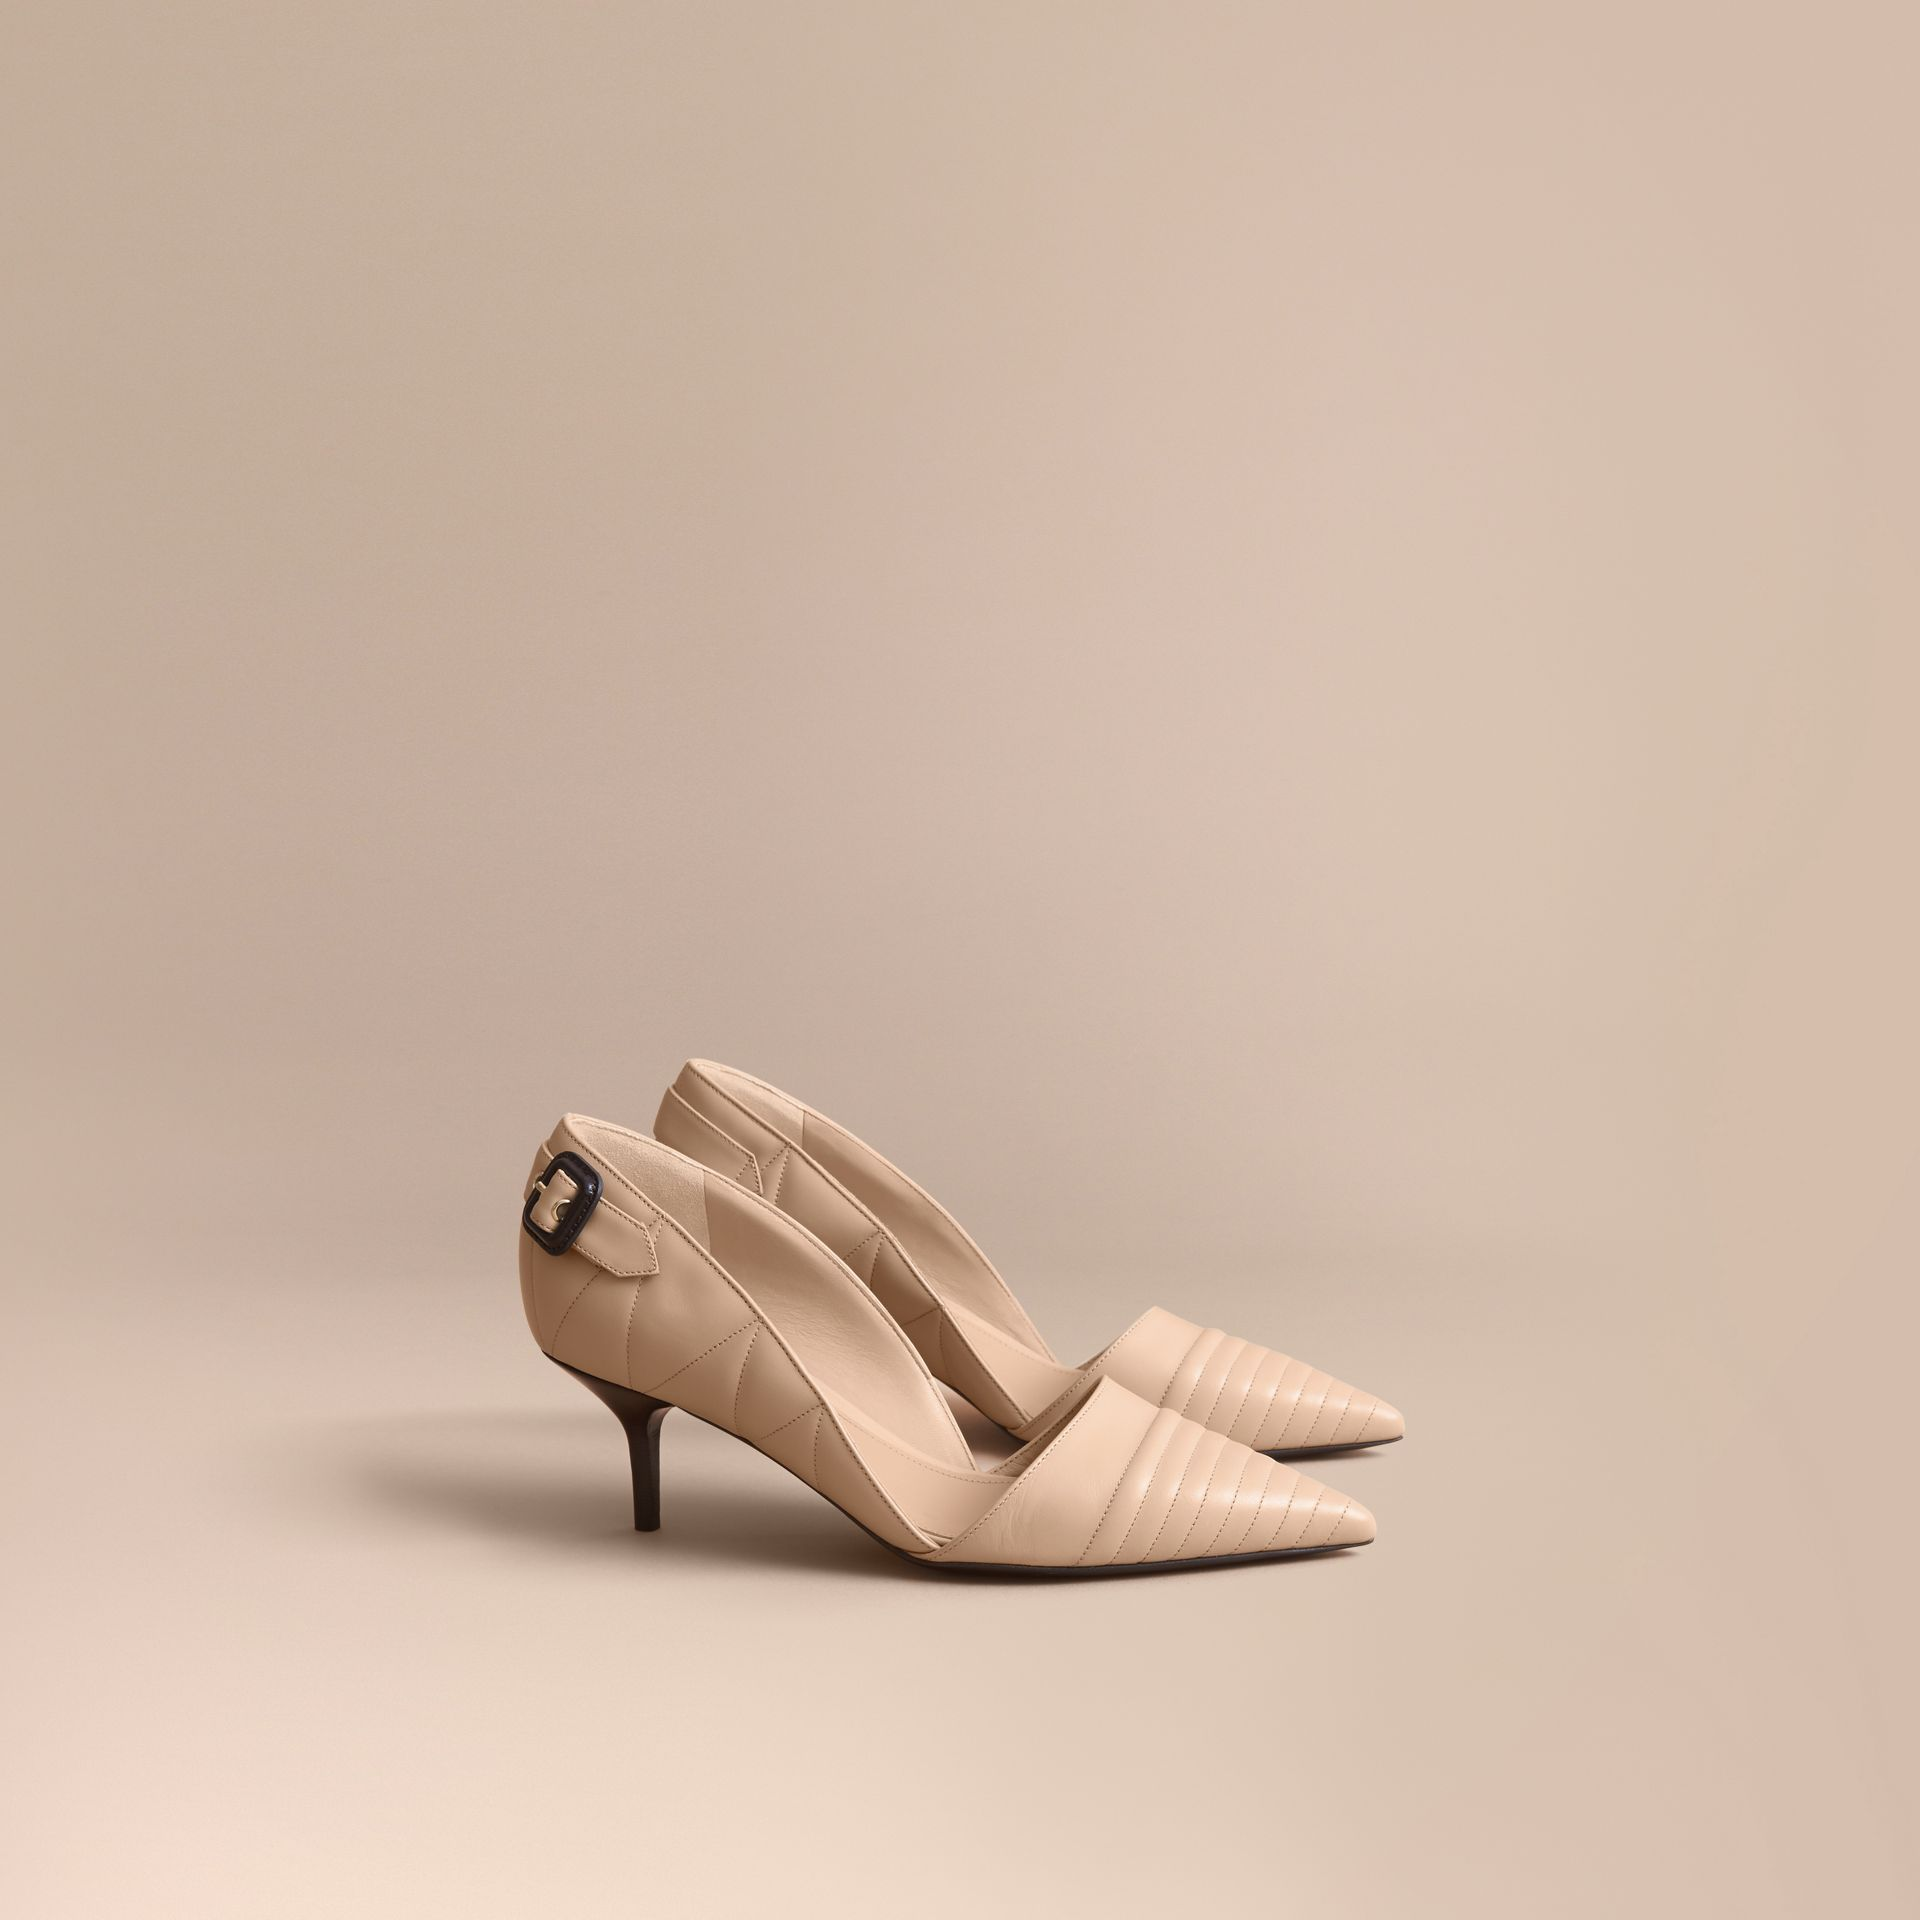 Quilted Leather D'Orsay Pumps in Pale Taupe - Women | Burberry Australia - gallery image 1